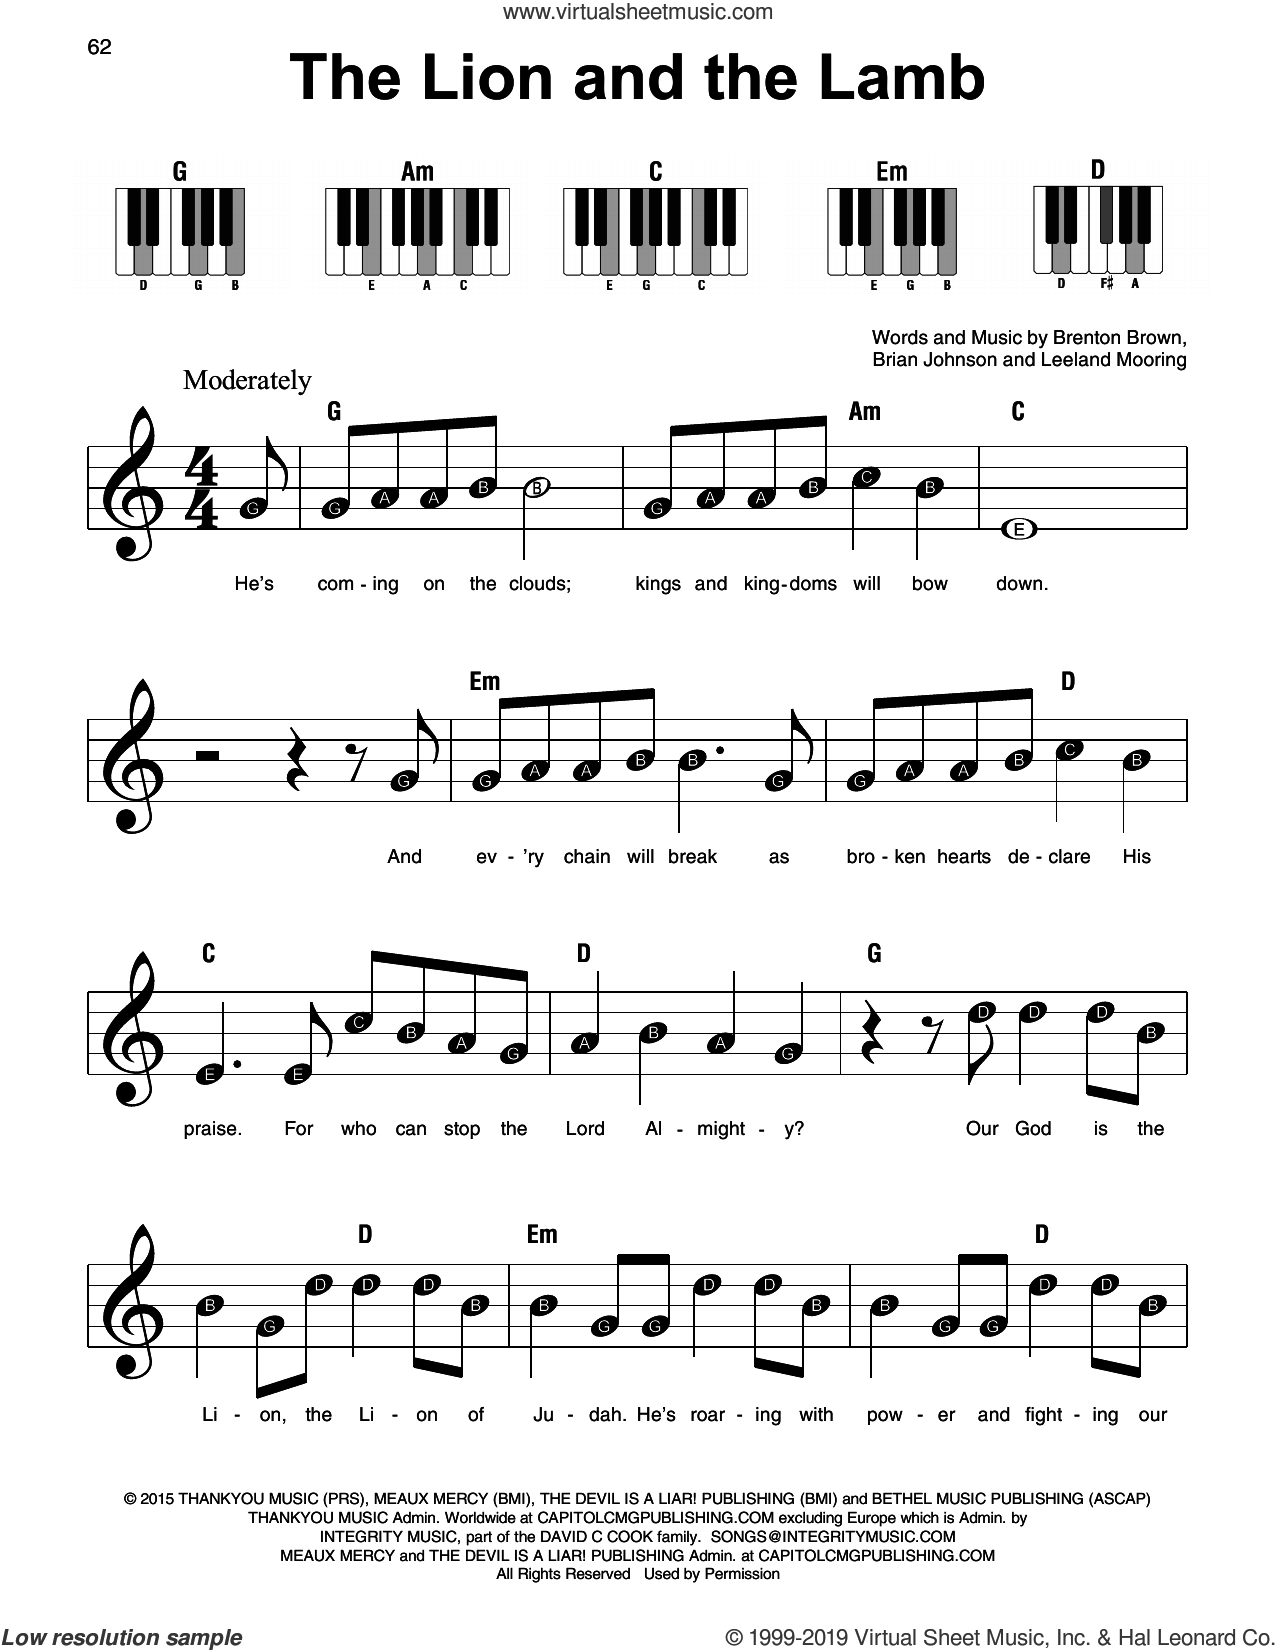 The Lion And The Lamb sheet music for piano solo by Big Daddy Weave, Brenton Brown, Brian Johnson and Leeland Mooring, beginner skill level